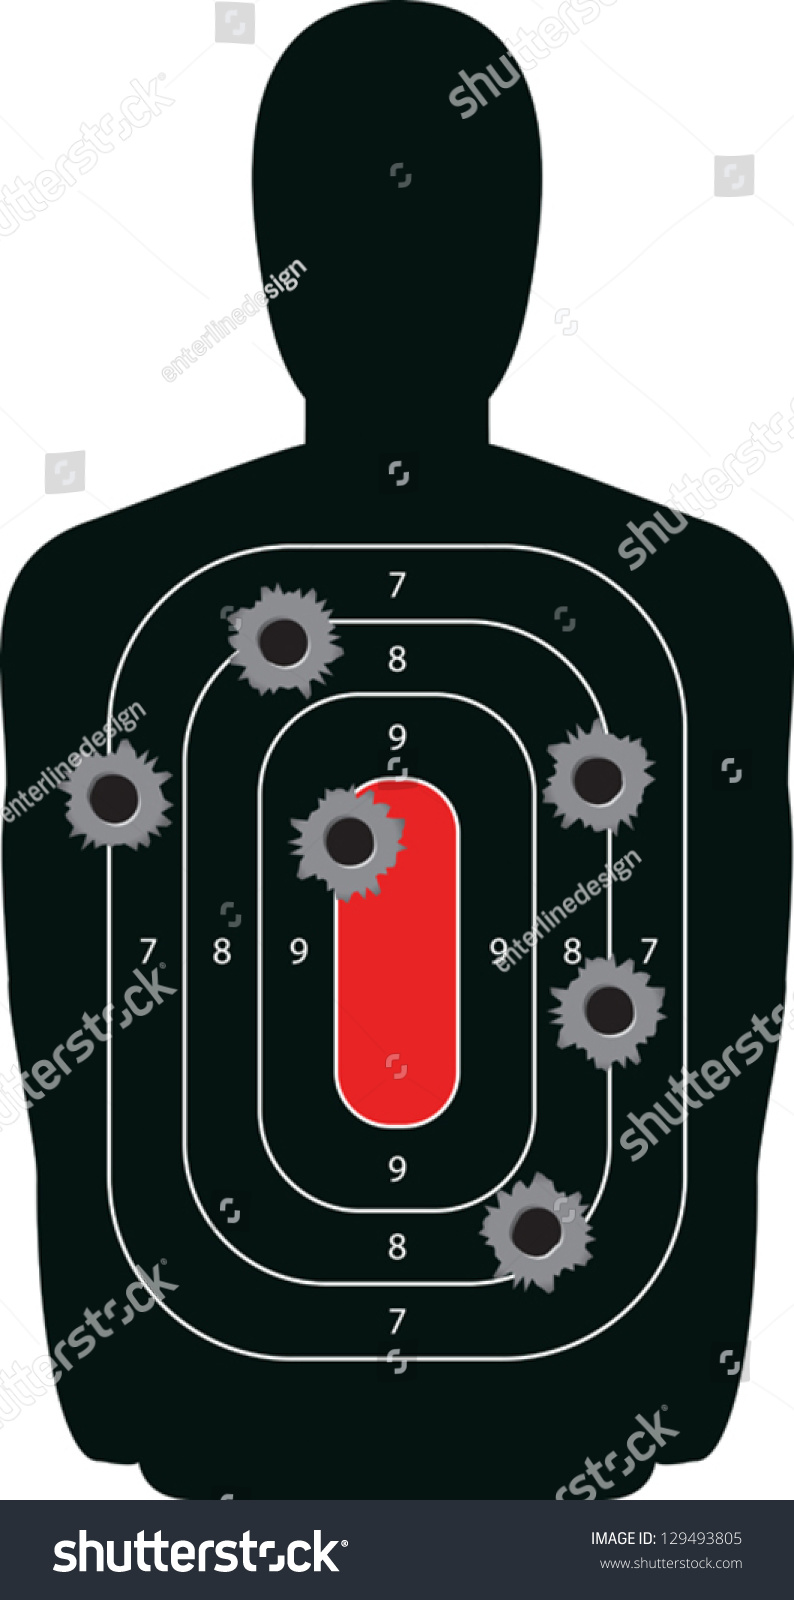 Indoor shooting range silhouette paper target shot full of bullet